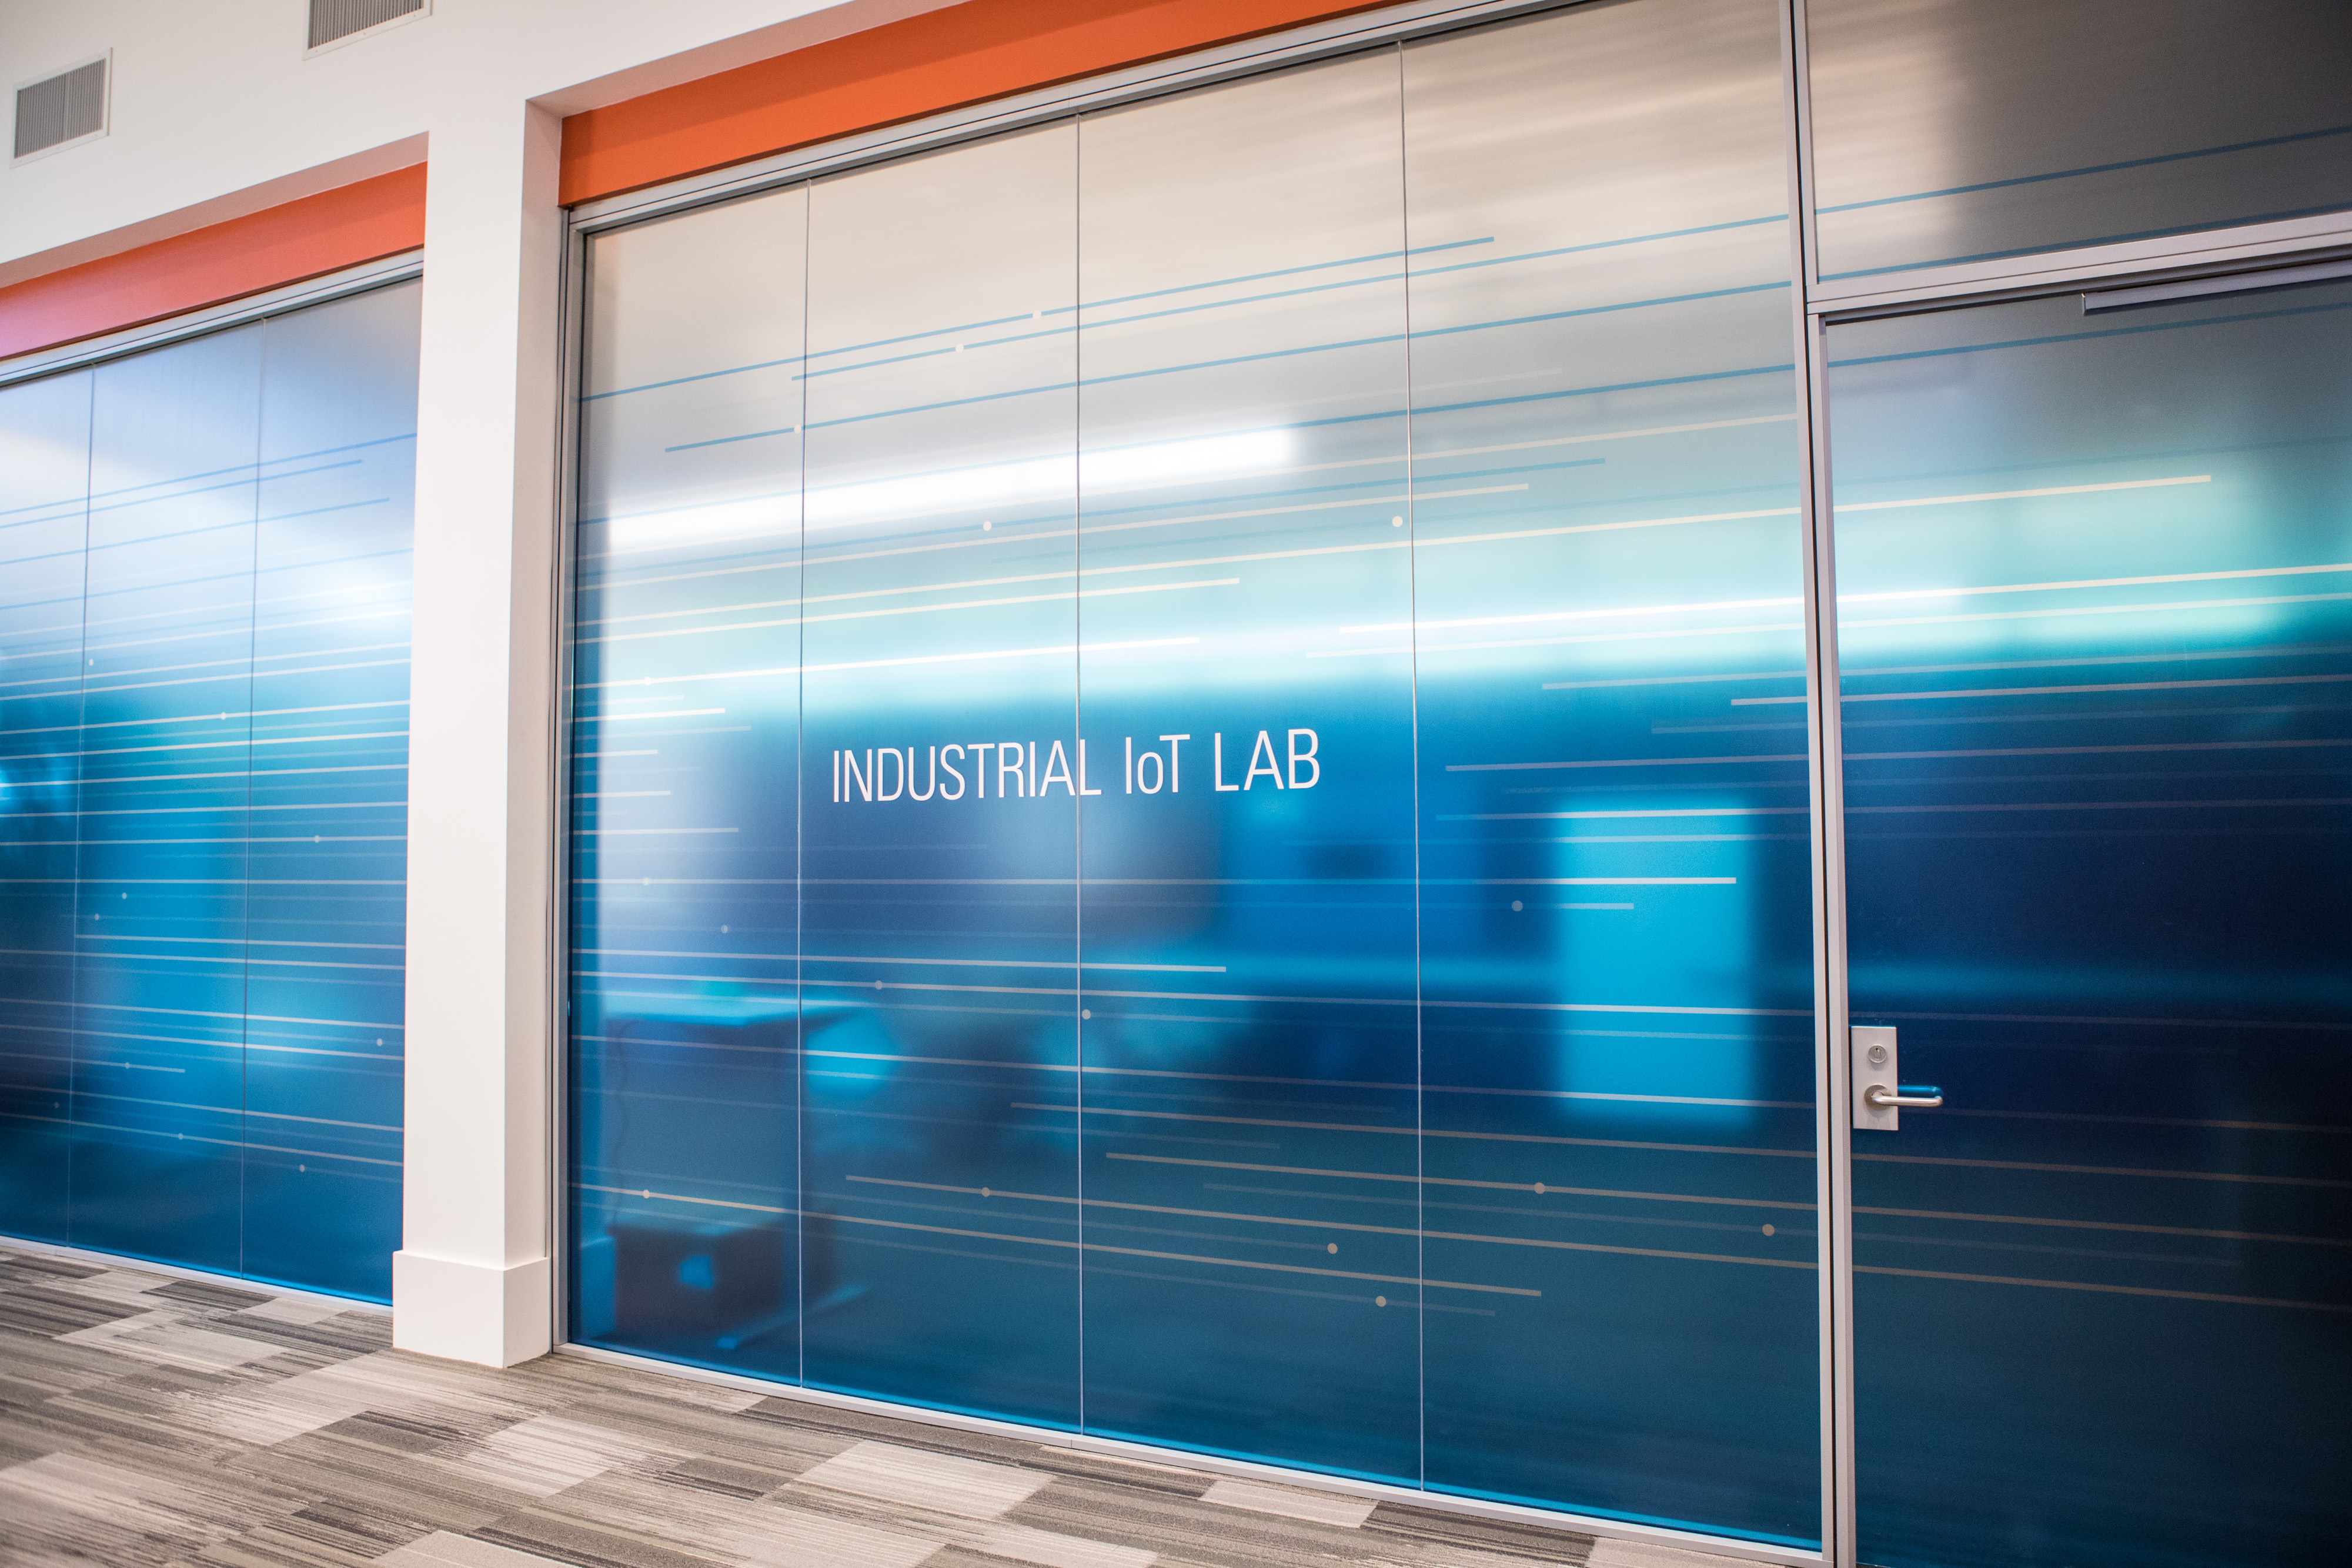 The NI Industrial IoT Lab focuses on intelligent systems that connect operational technology, information technology and the companies working on these systems. (Photo: Business Wire)